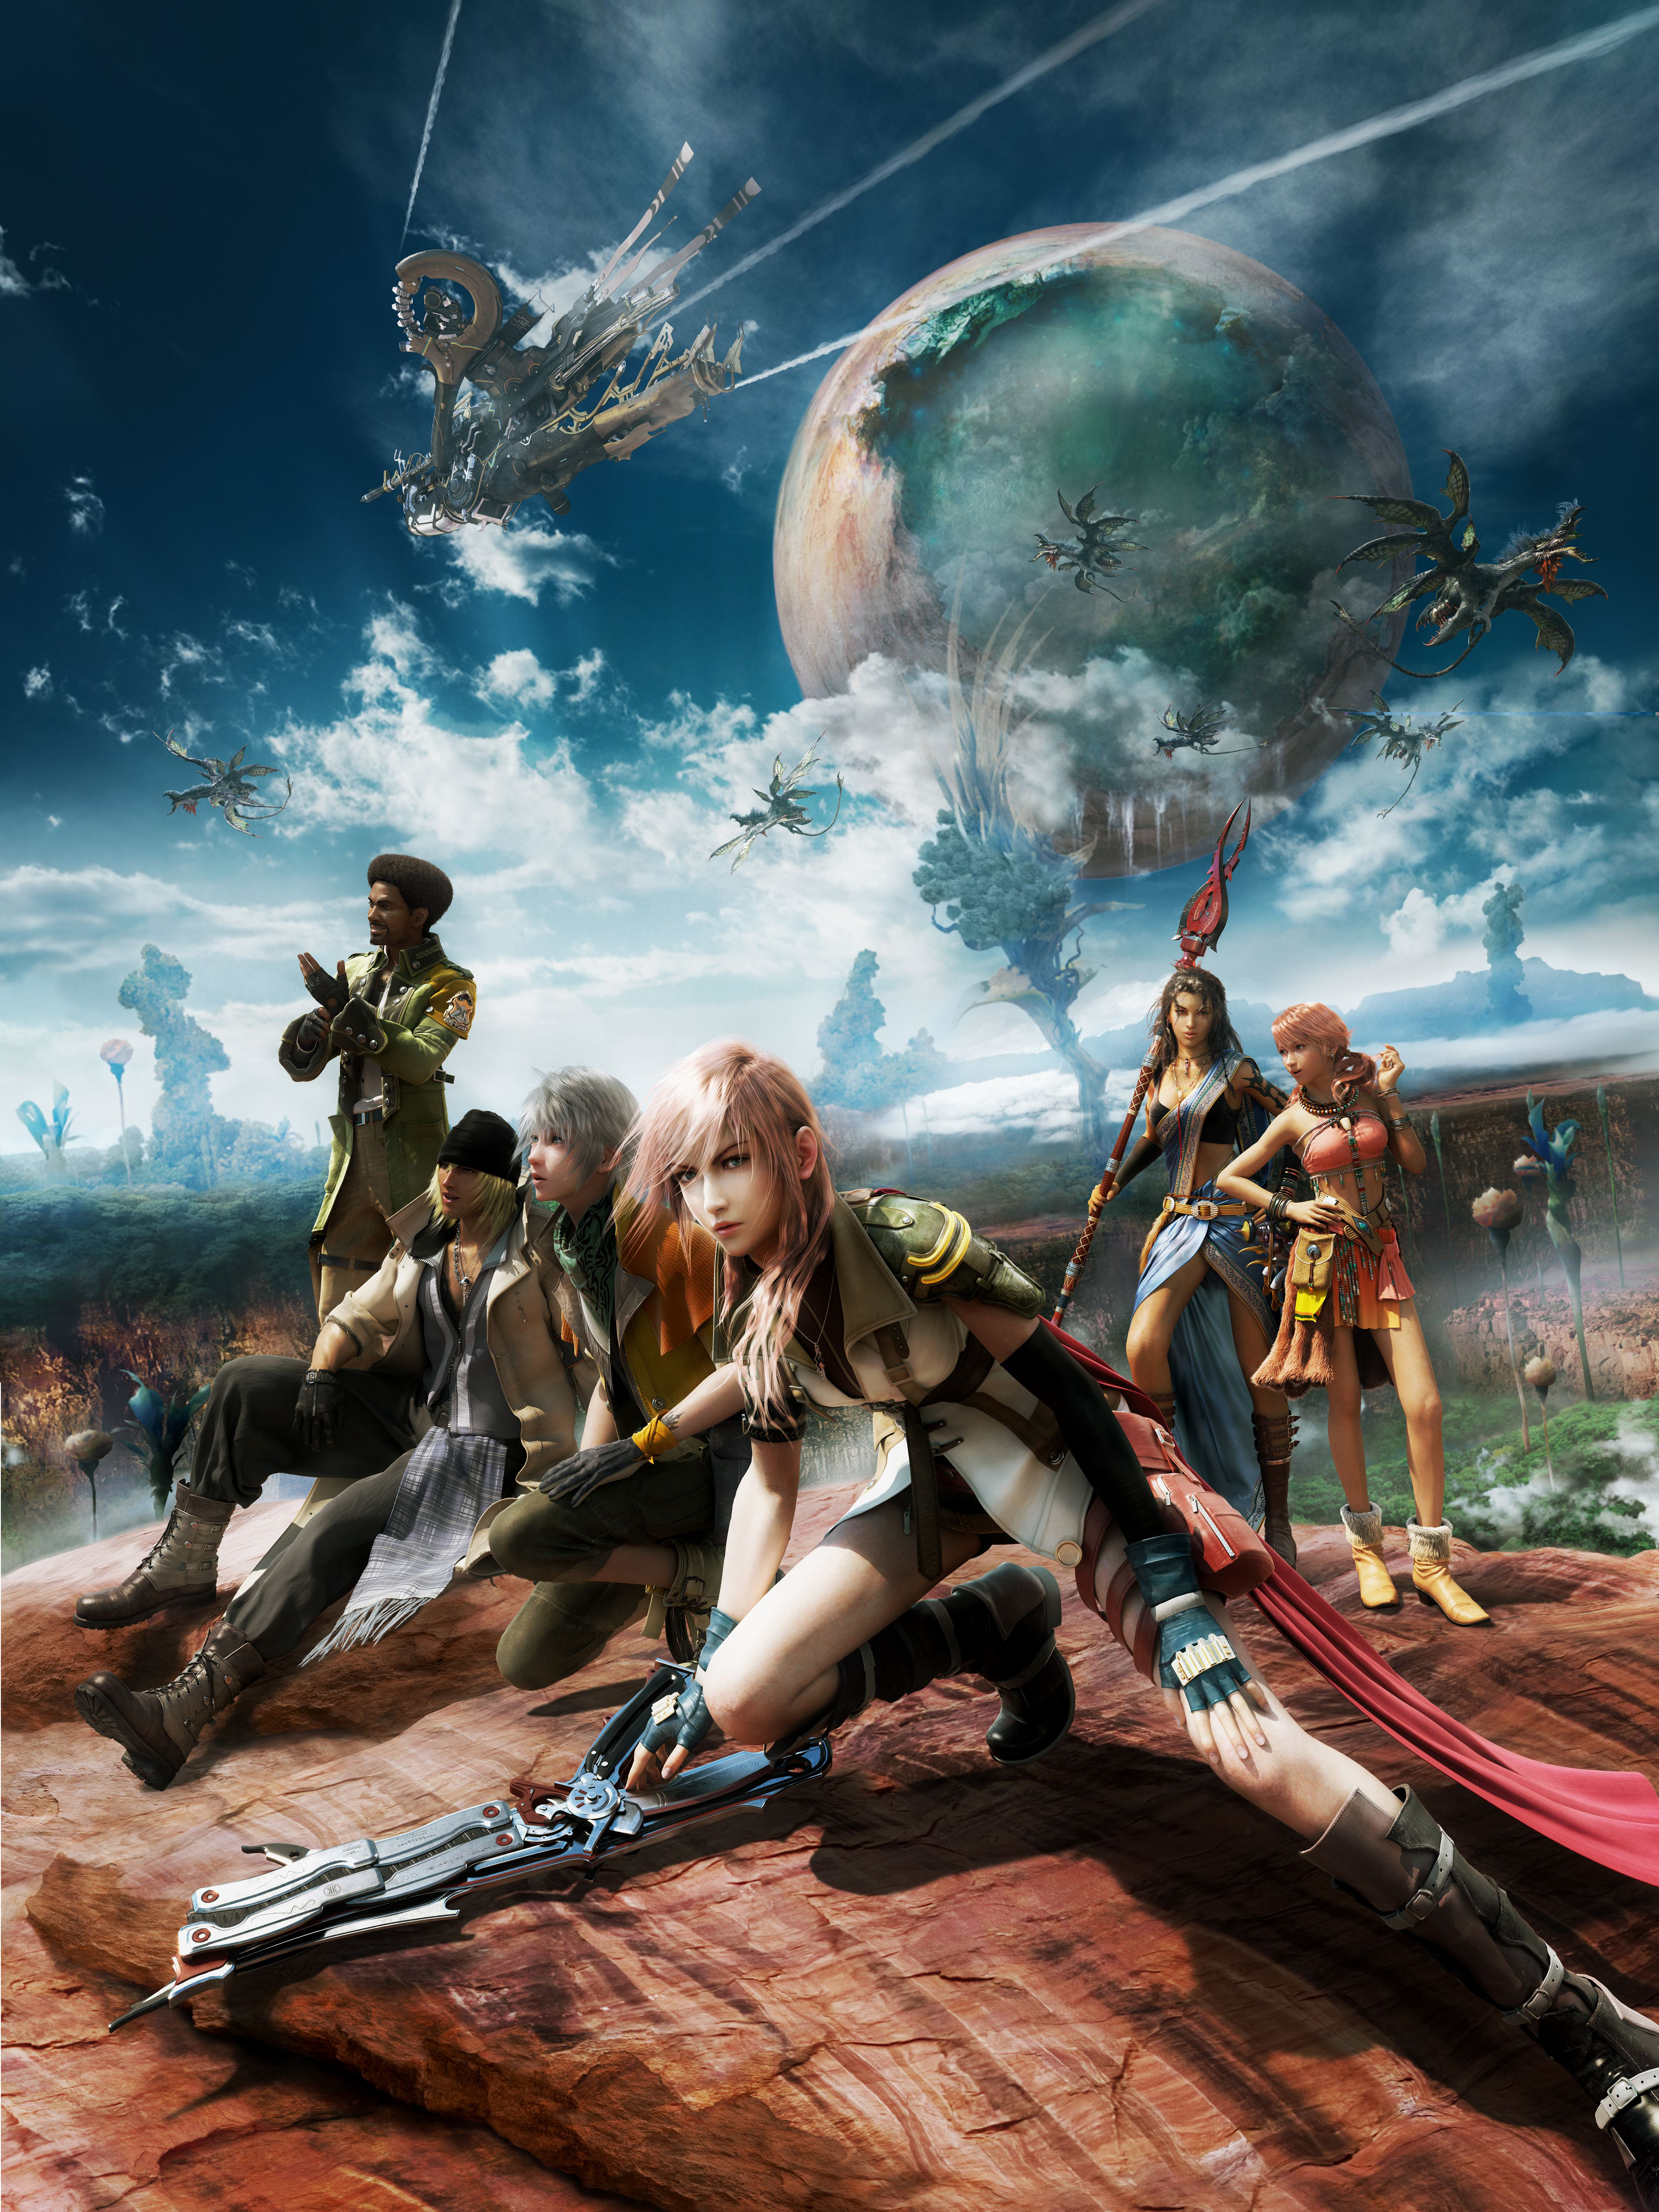 final fantasy xiii - zerochan anime image board